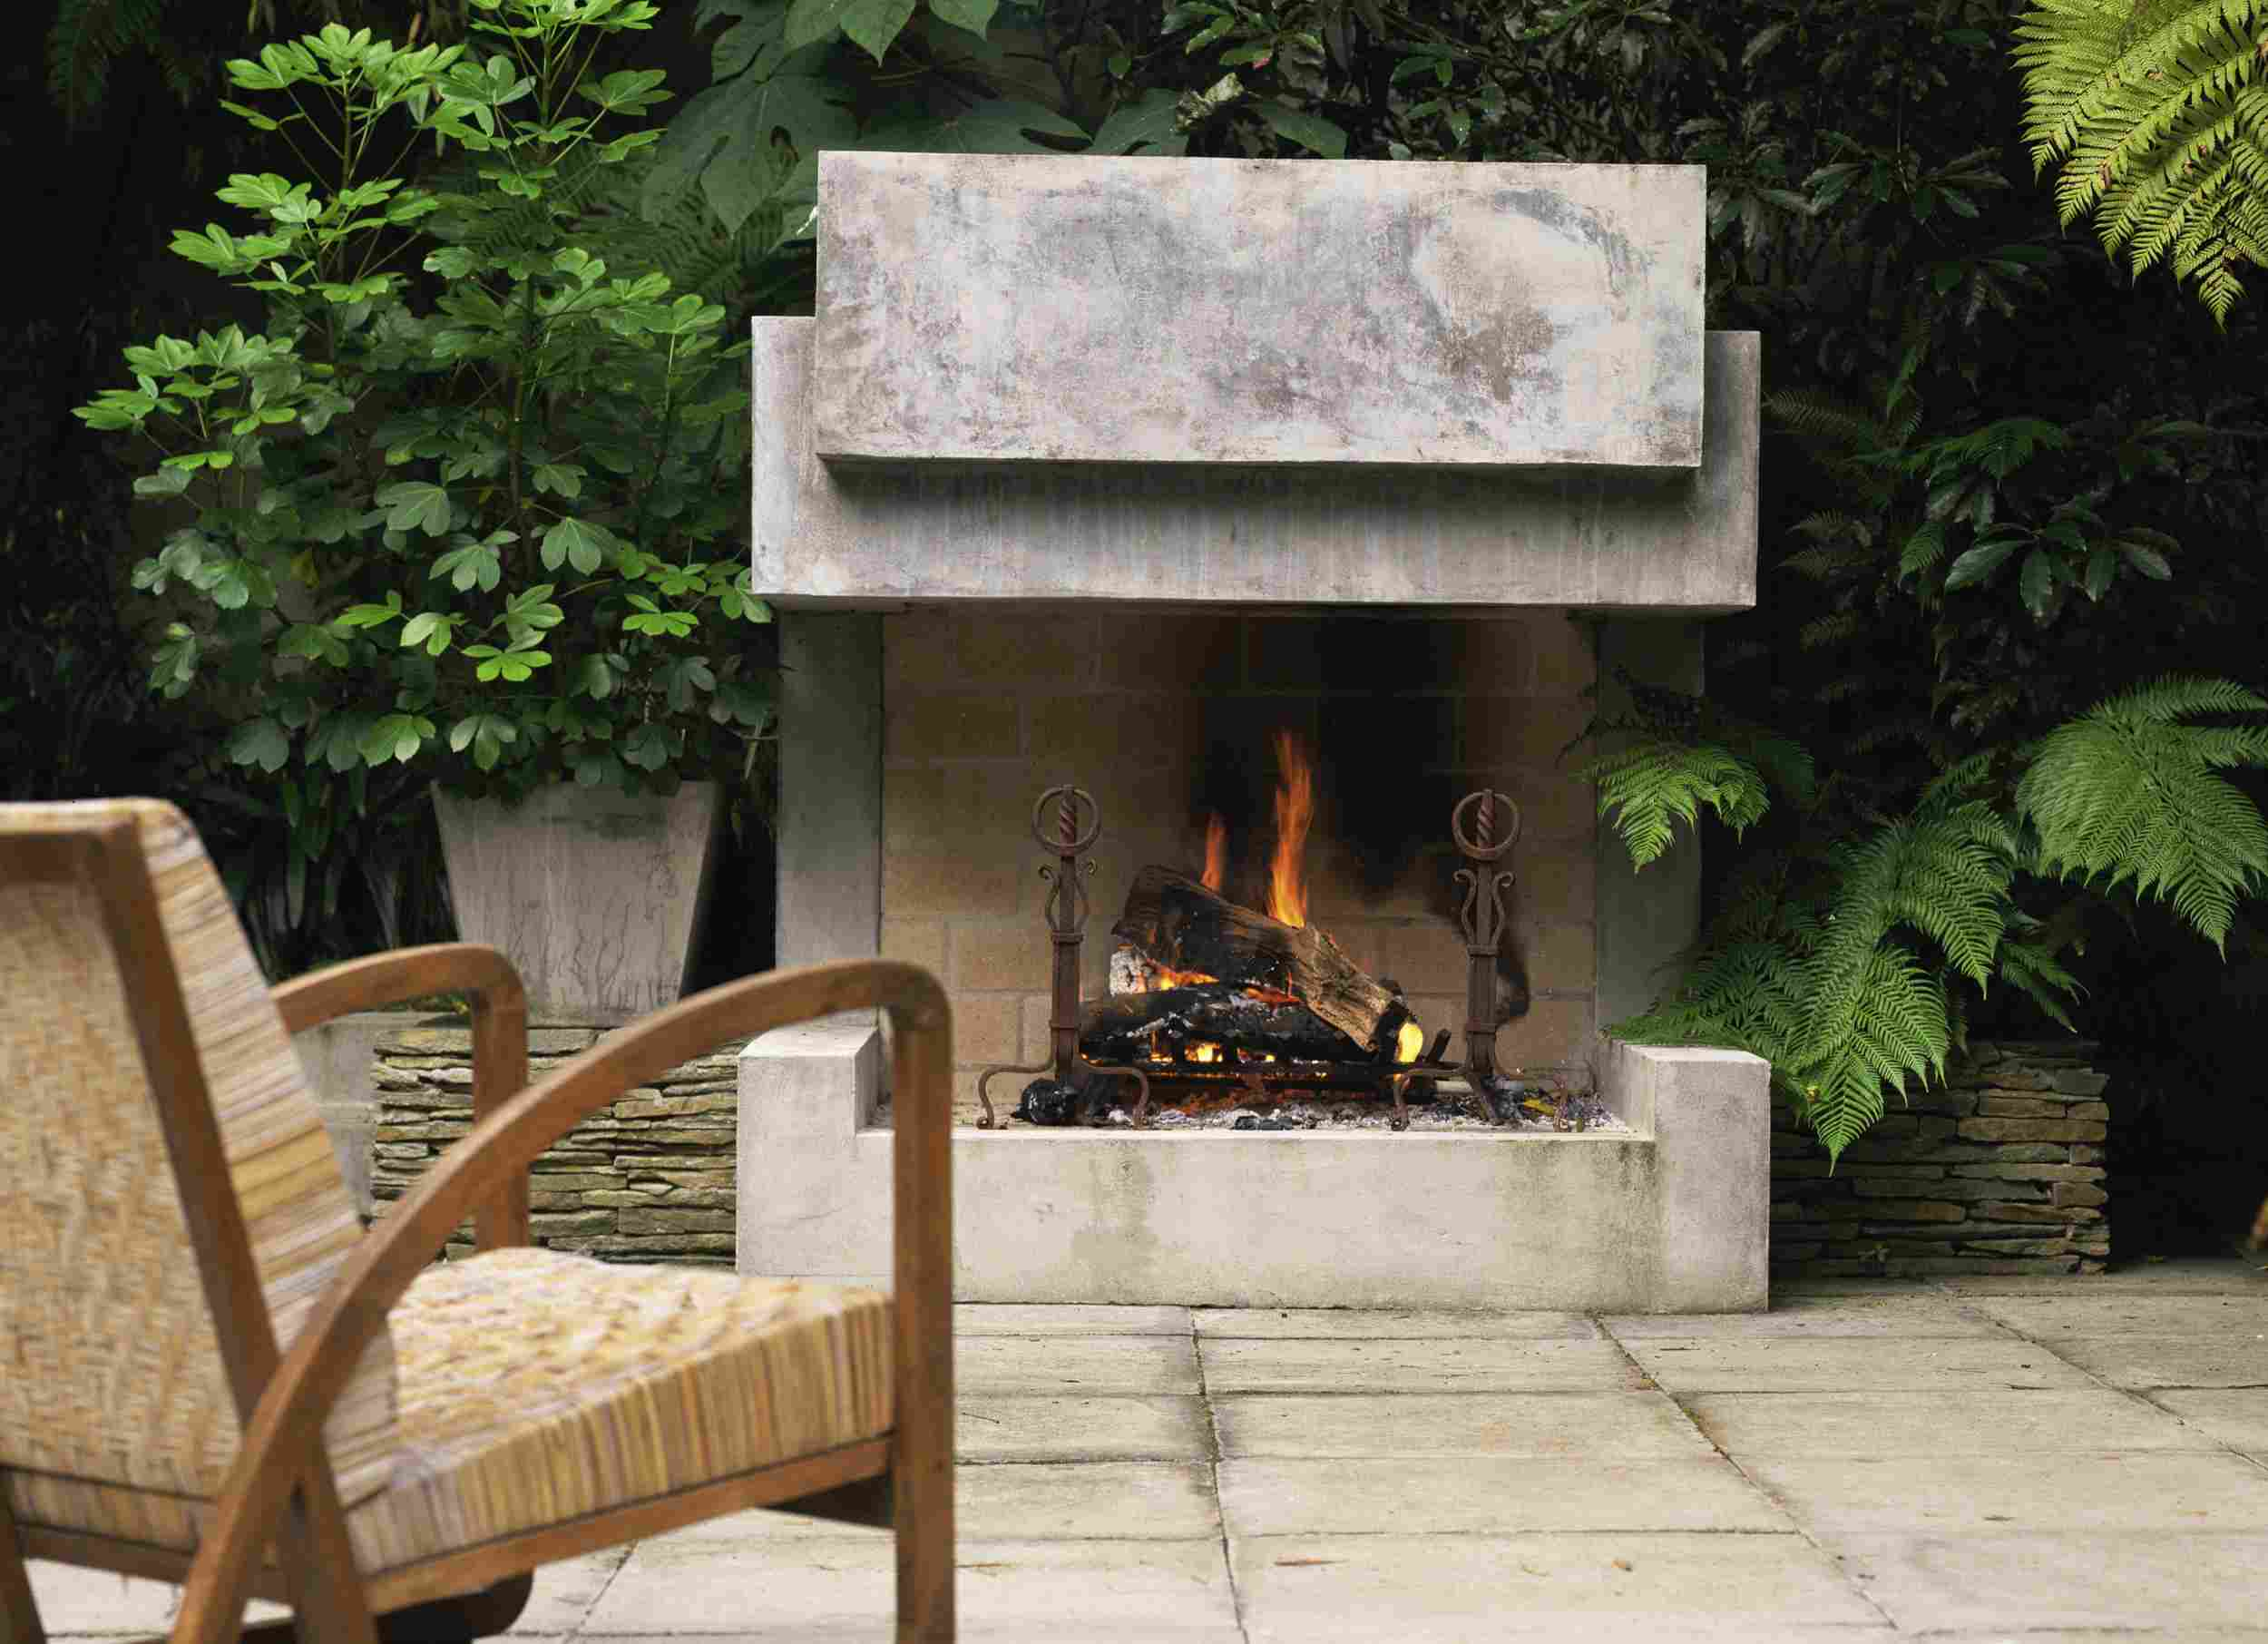 91909844 full 5682e4845f9b586a9ef9493a Top Result 50 Awesome Pre Made Outdoor Fireplace